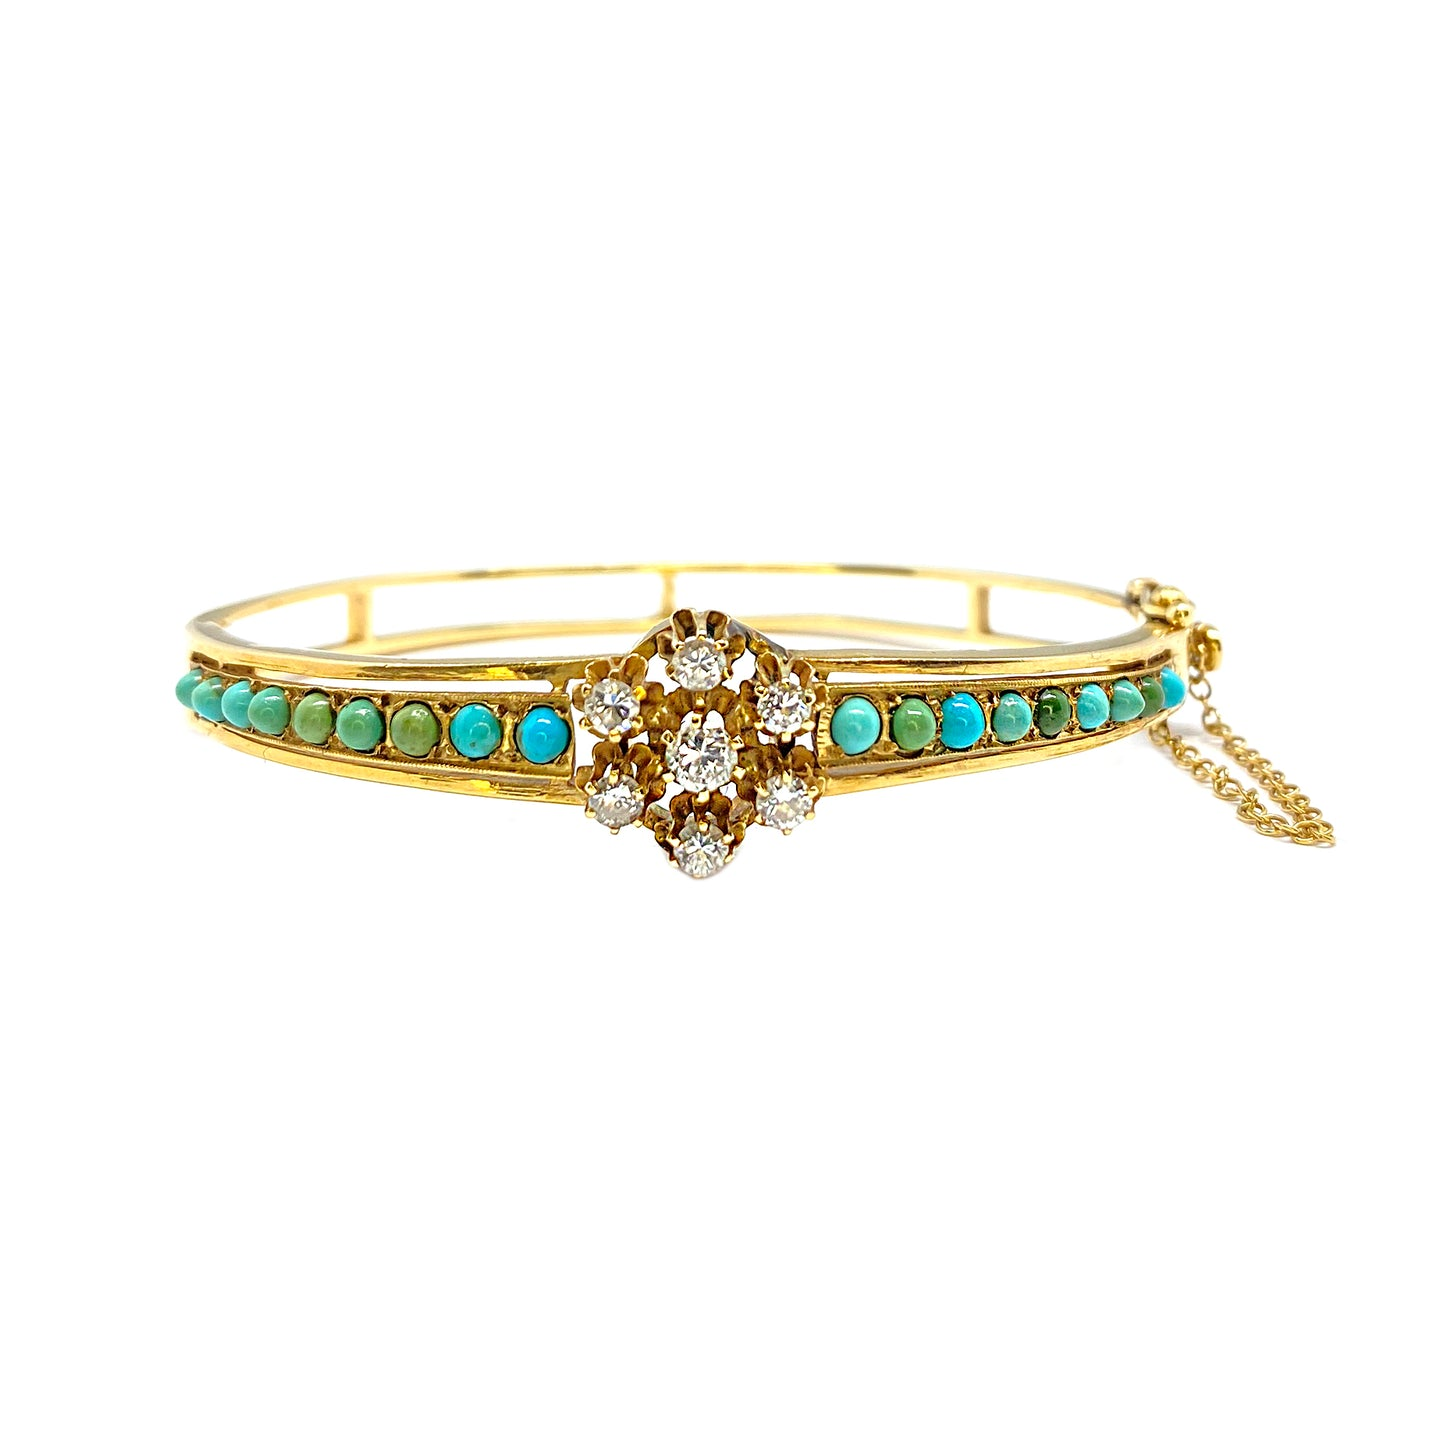 Diamond & Turquoise Bangle Circa 1940s-1950s in 14k